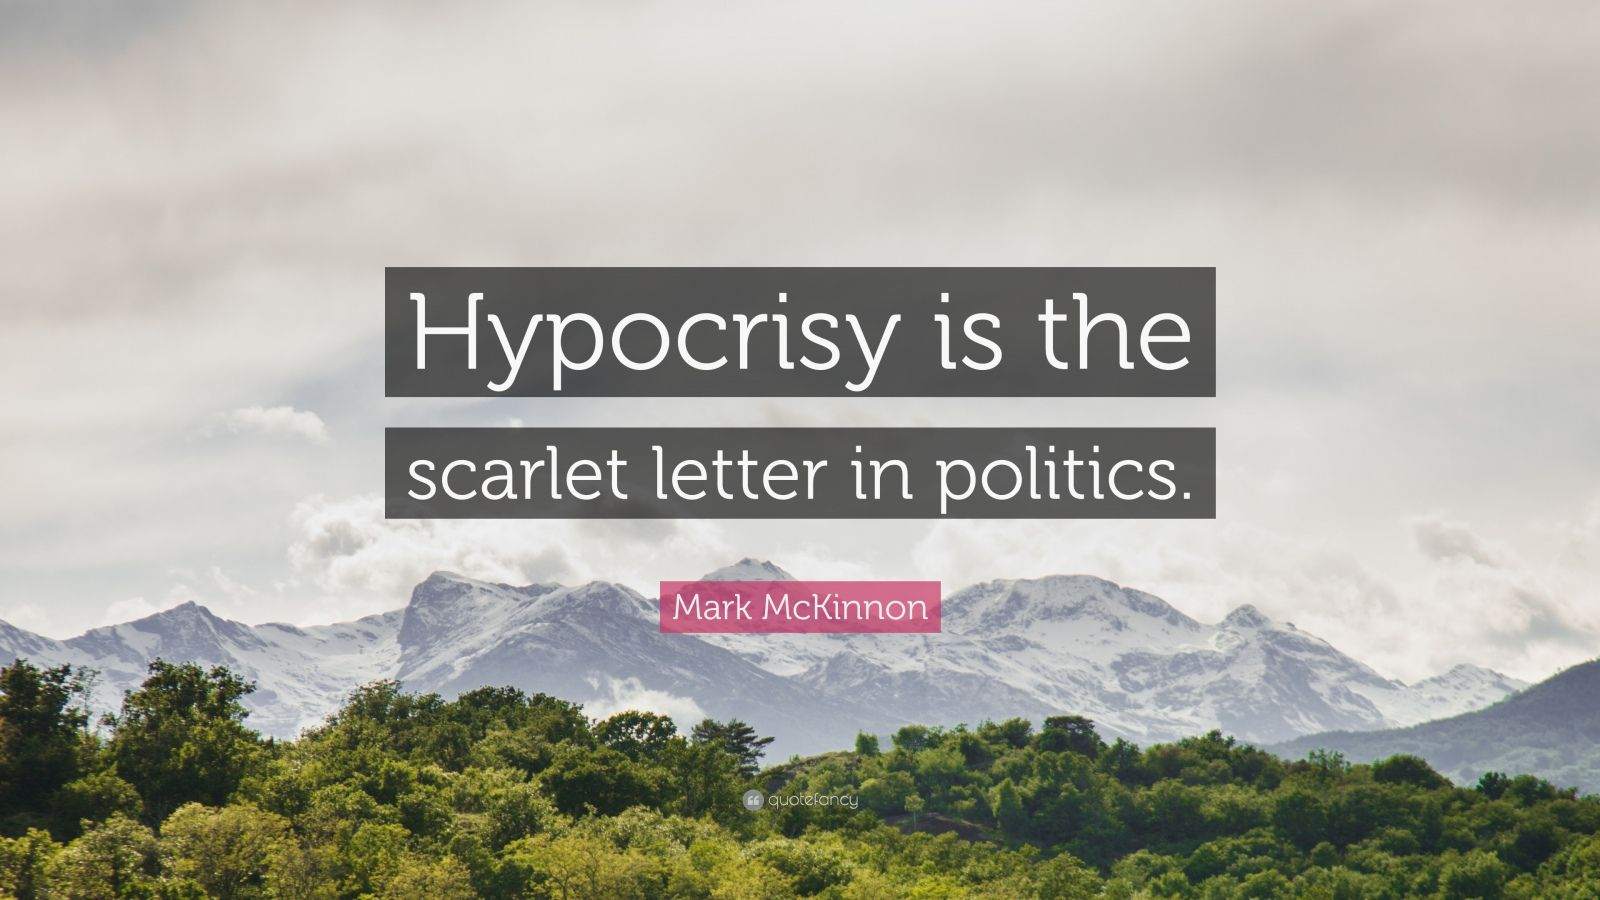 hypocrisy in the scarlet letter informatin for letter mark mckinnon quotes 35 quotefancy arthur dimmesdale the scarlet letter